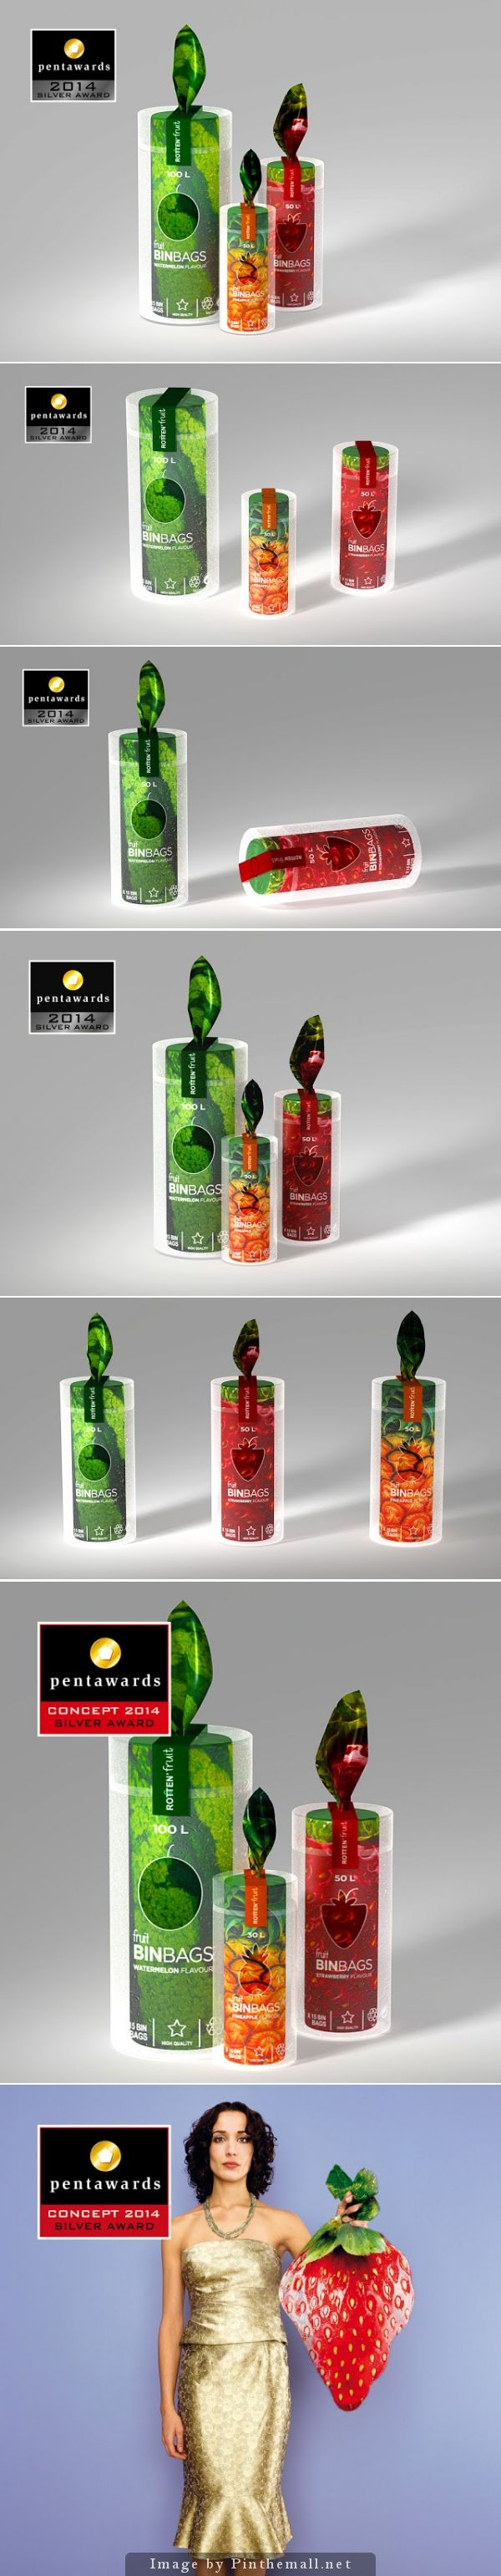 ROTTEN FRUIT (Concept) by Manon Fauvel #packaging #pentawards - http://www.packagingoftheworld.com/2014/11/rotten-fruit-concept.html